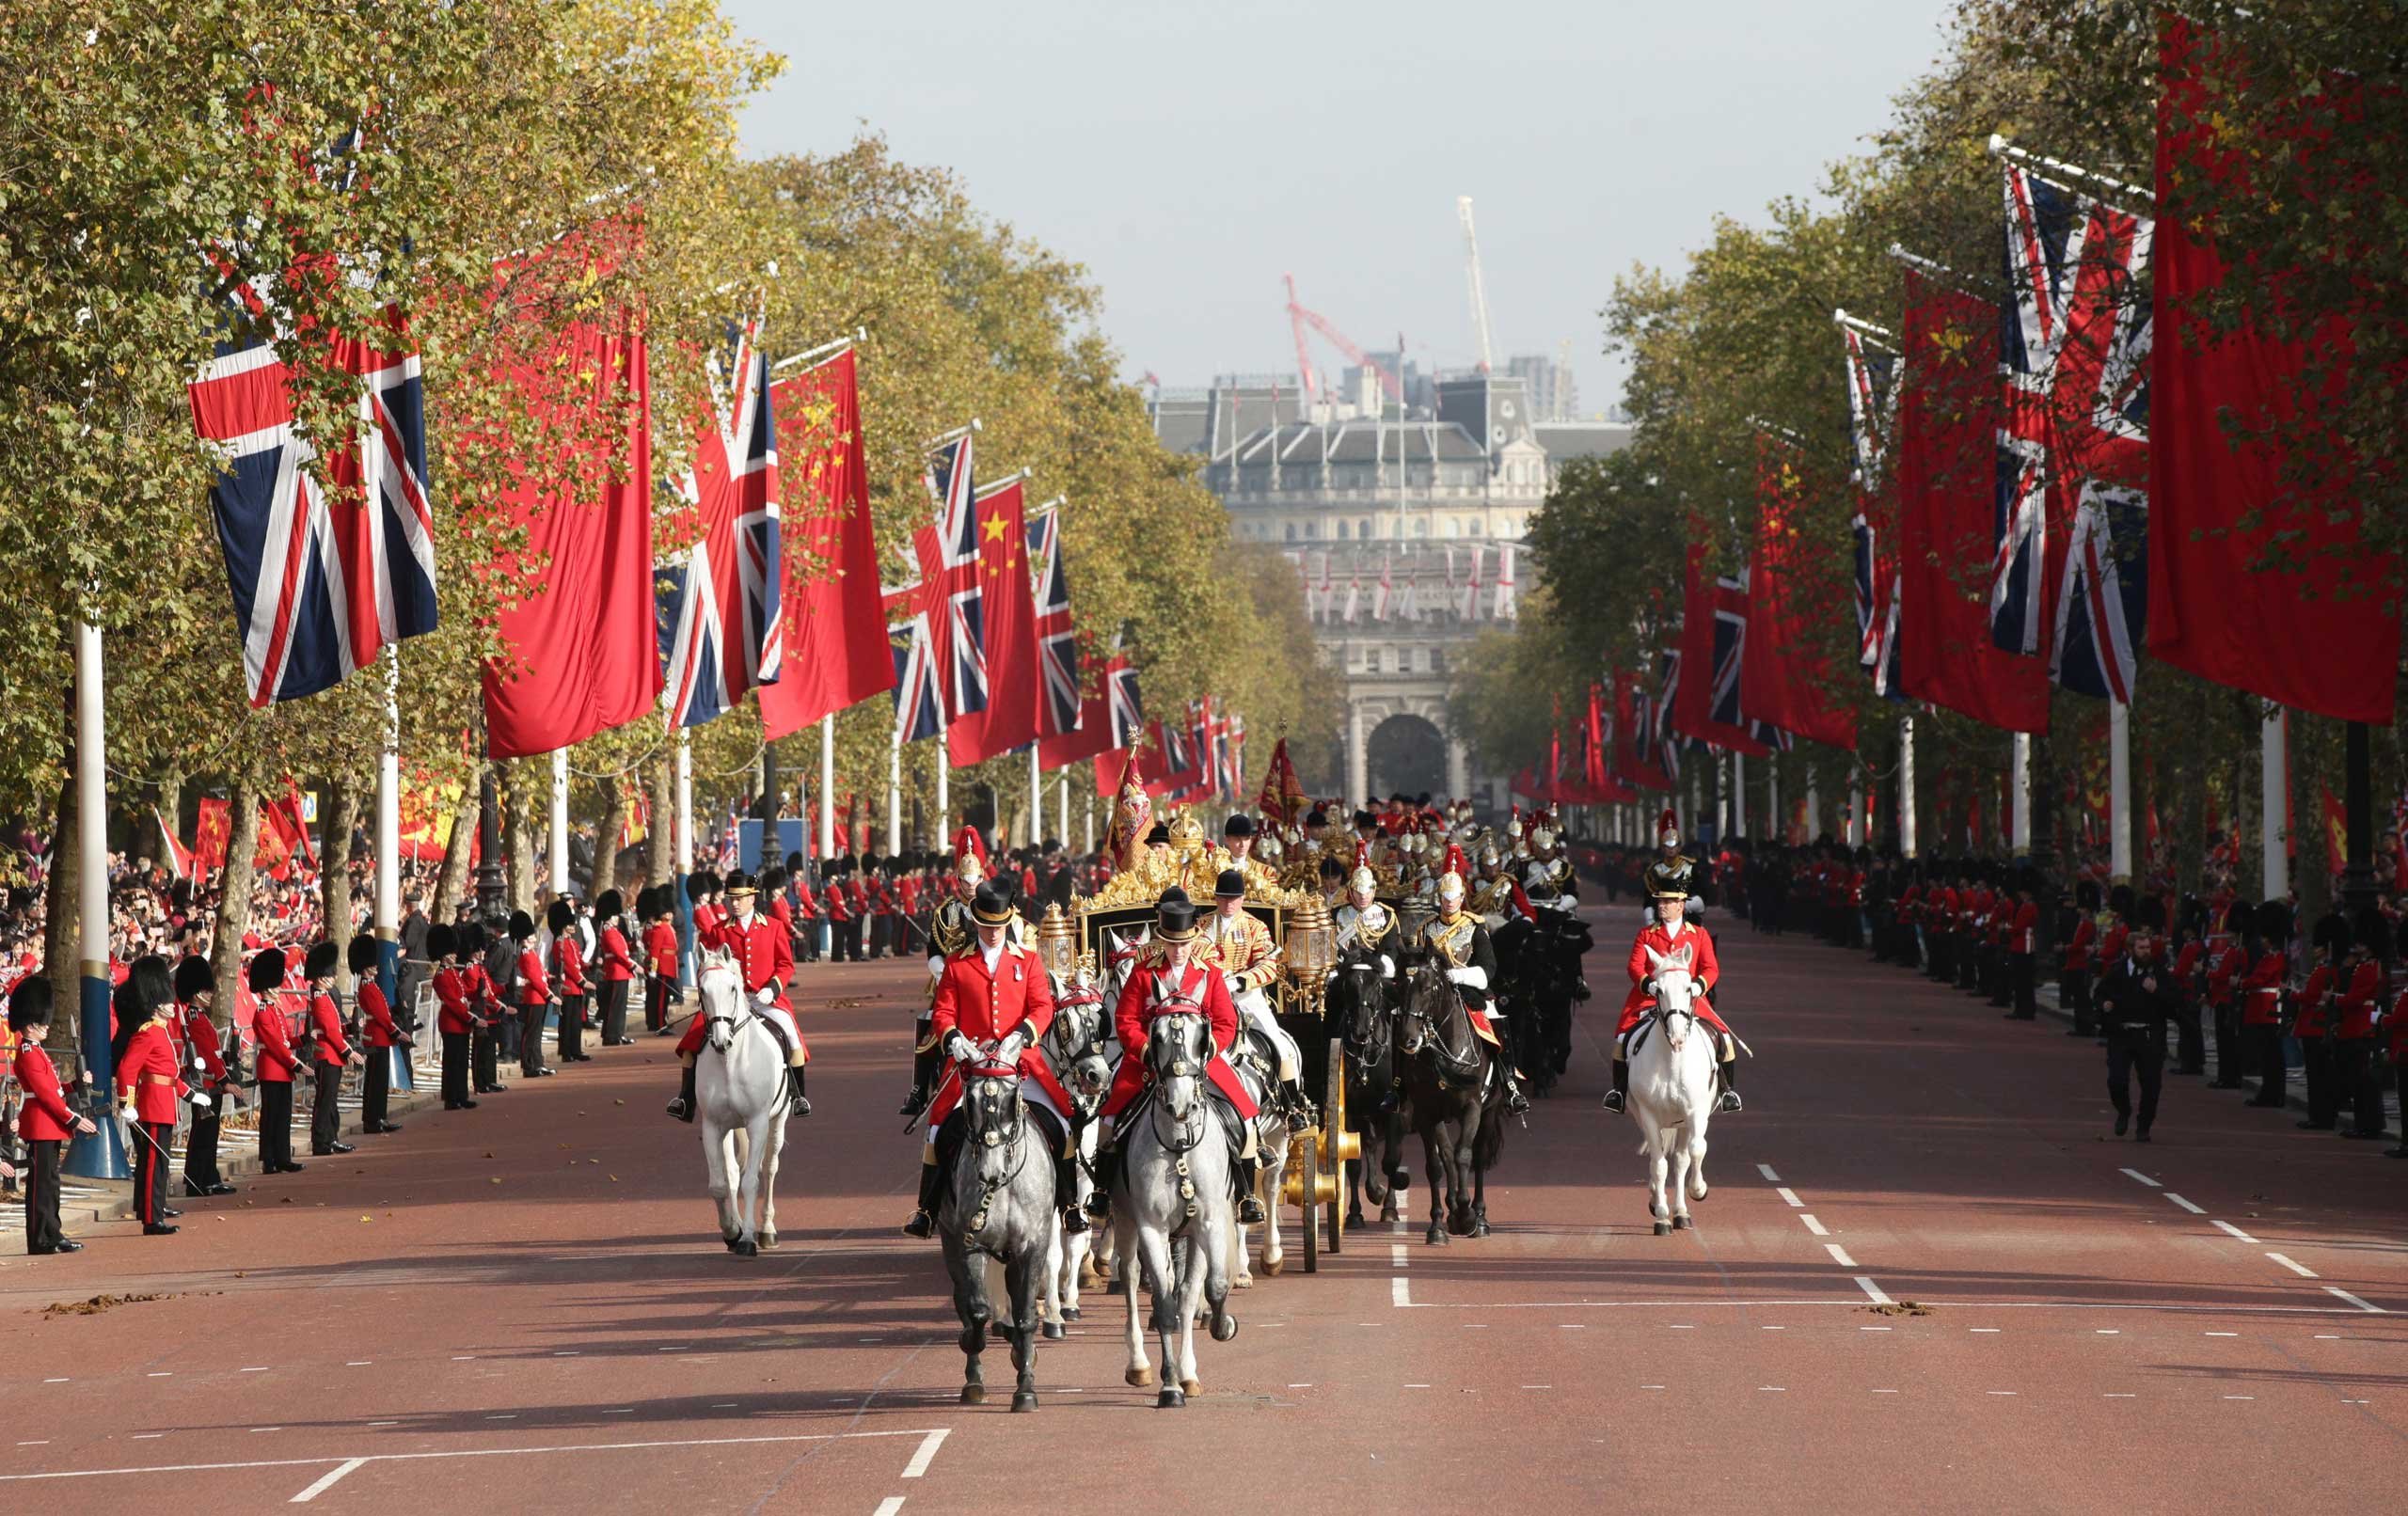 Queen Elizabeth II and President Xi, ride in the Diamond Jubilee State Coach along The Mall after the ceremonial welcome on Horse Guards Parade in London, on Oct. 20, 2015.